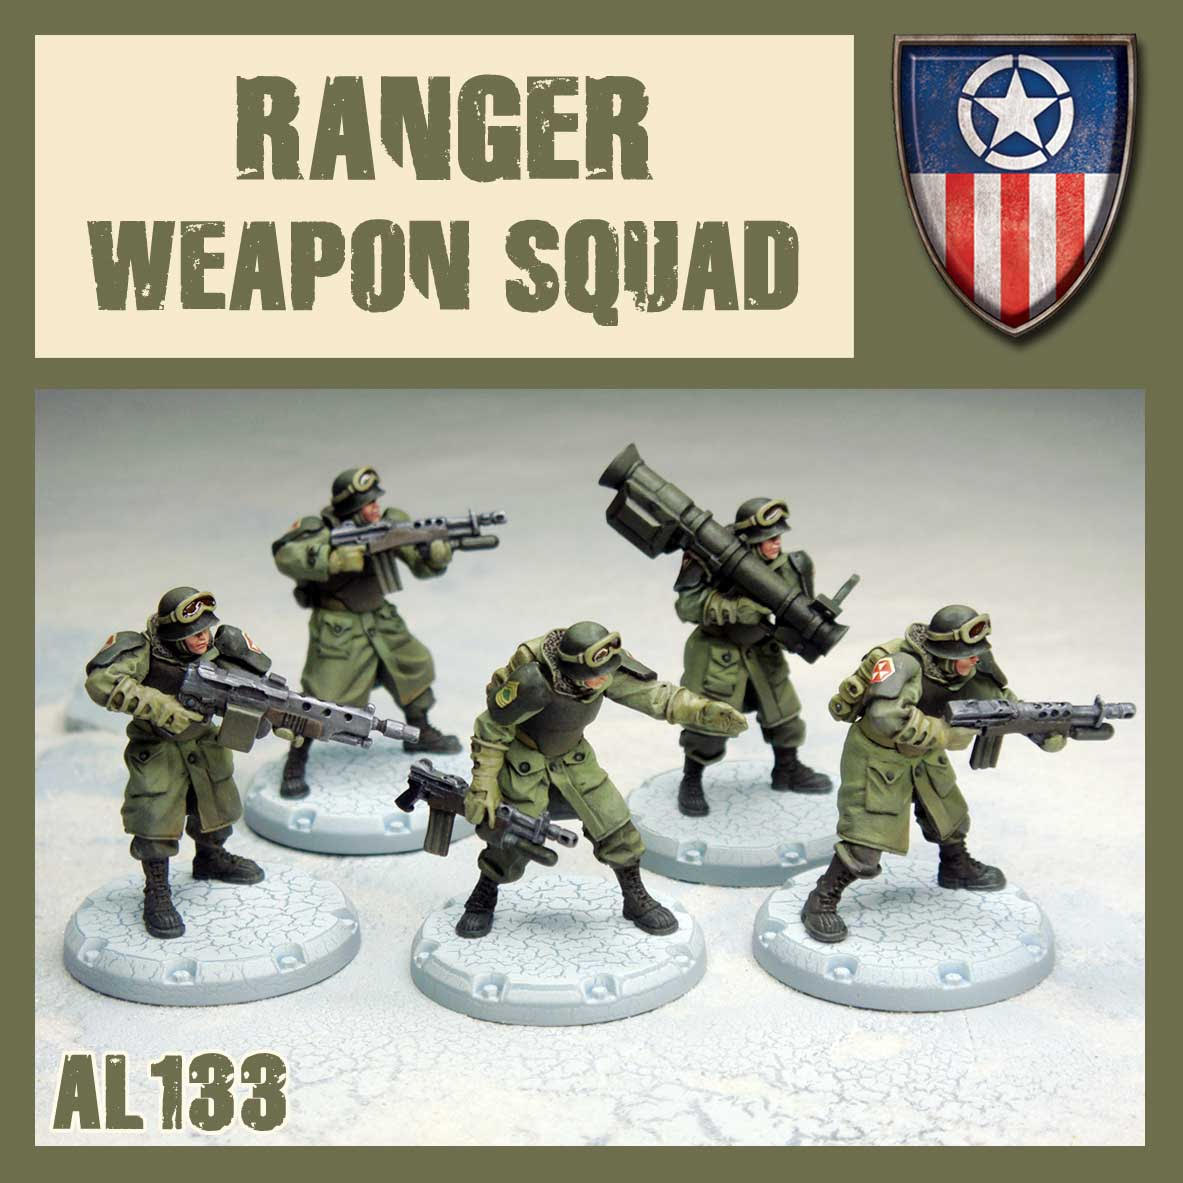 Ranger Weapon Squad